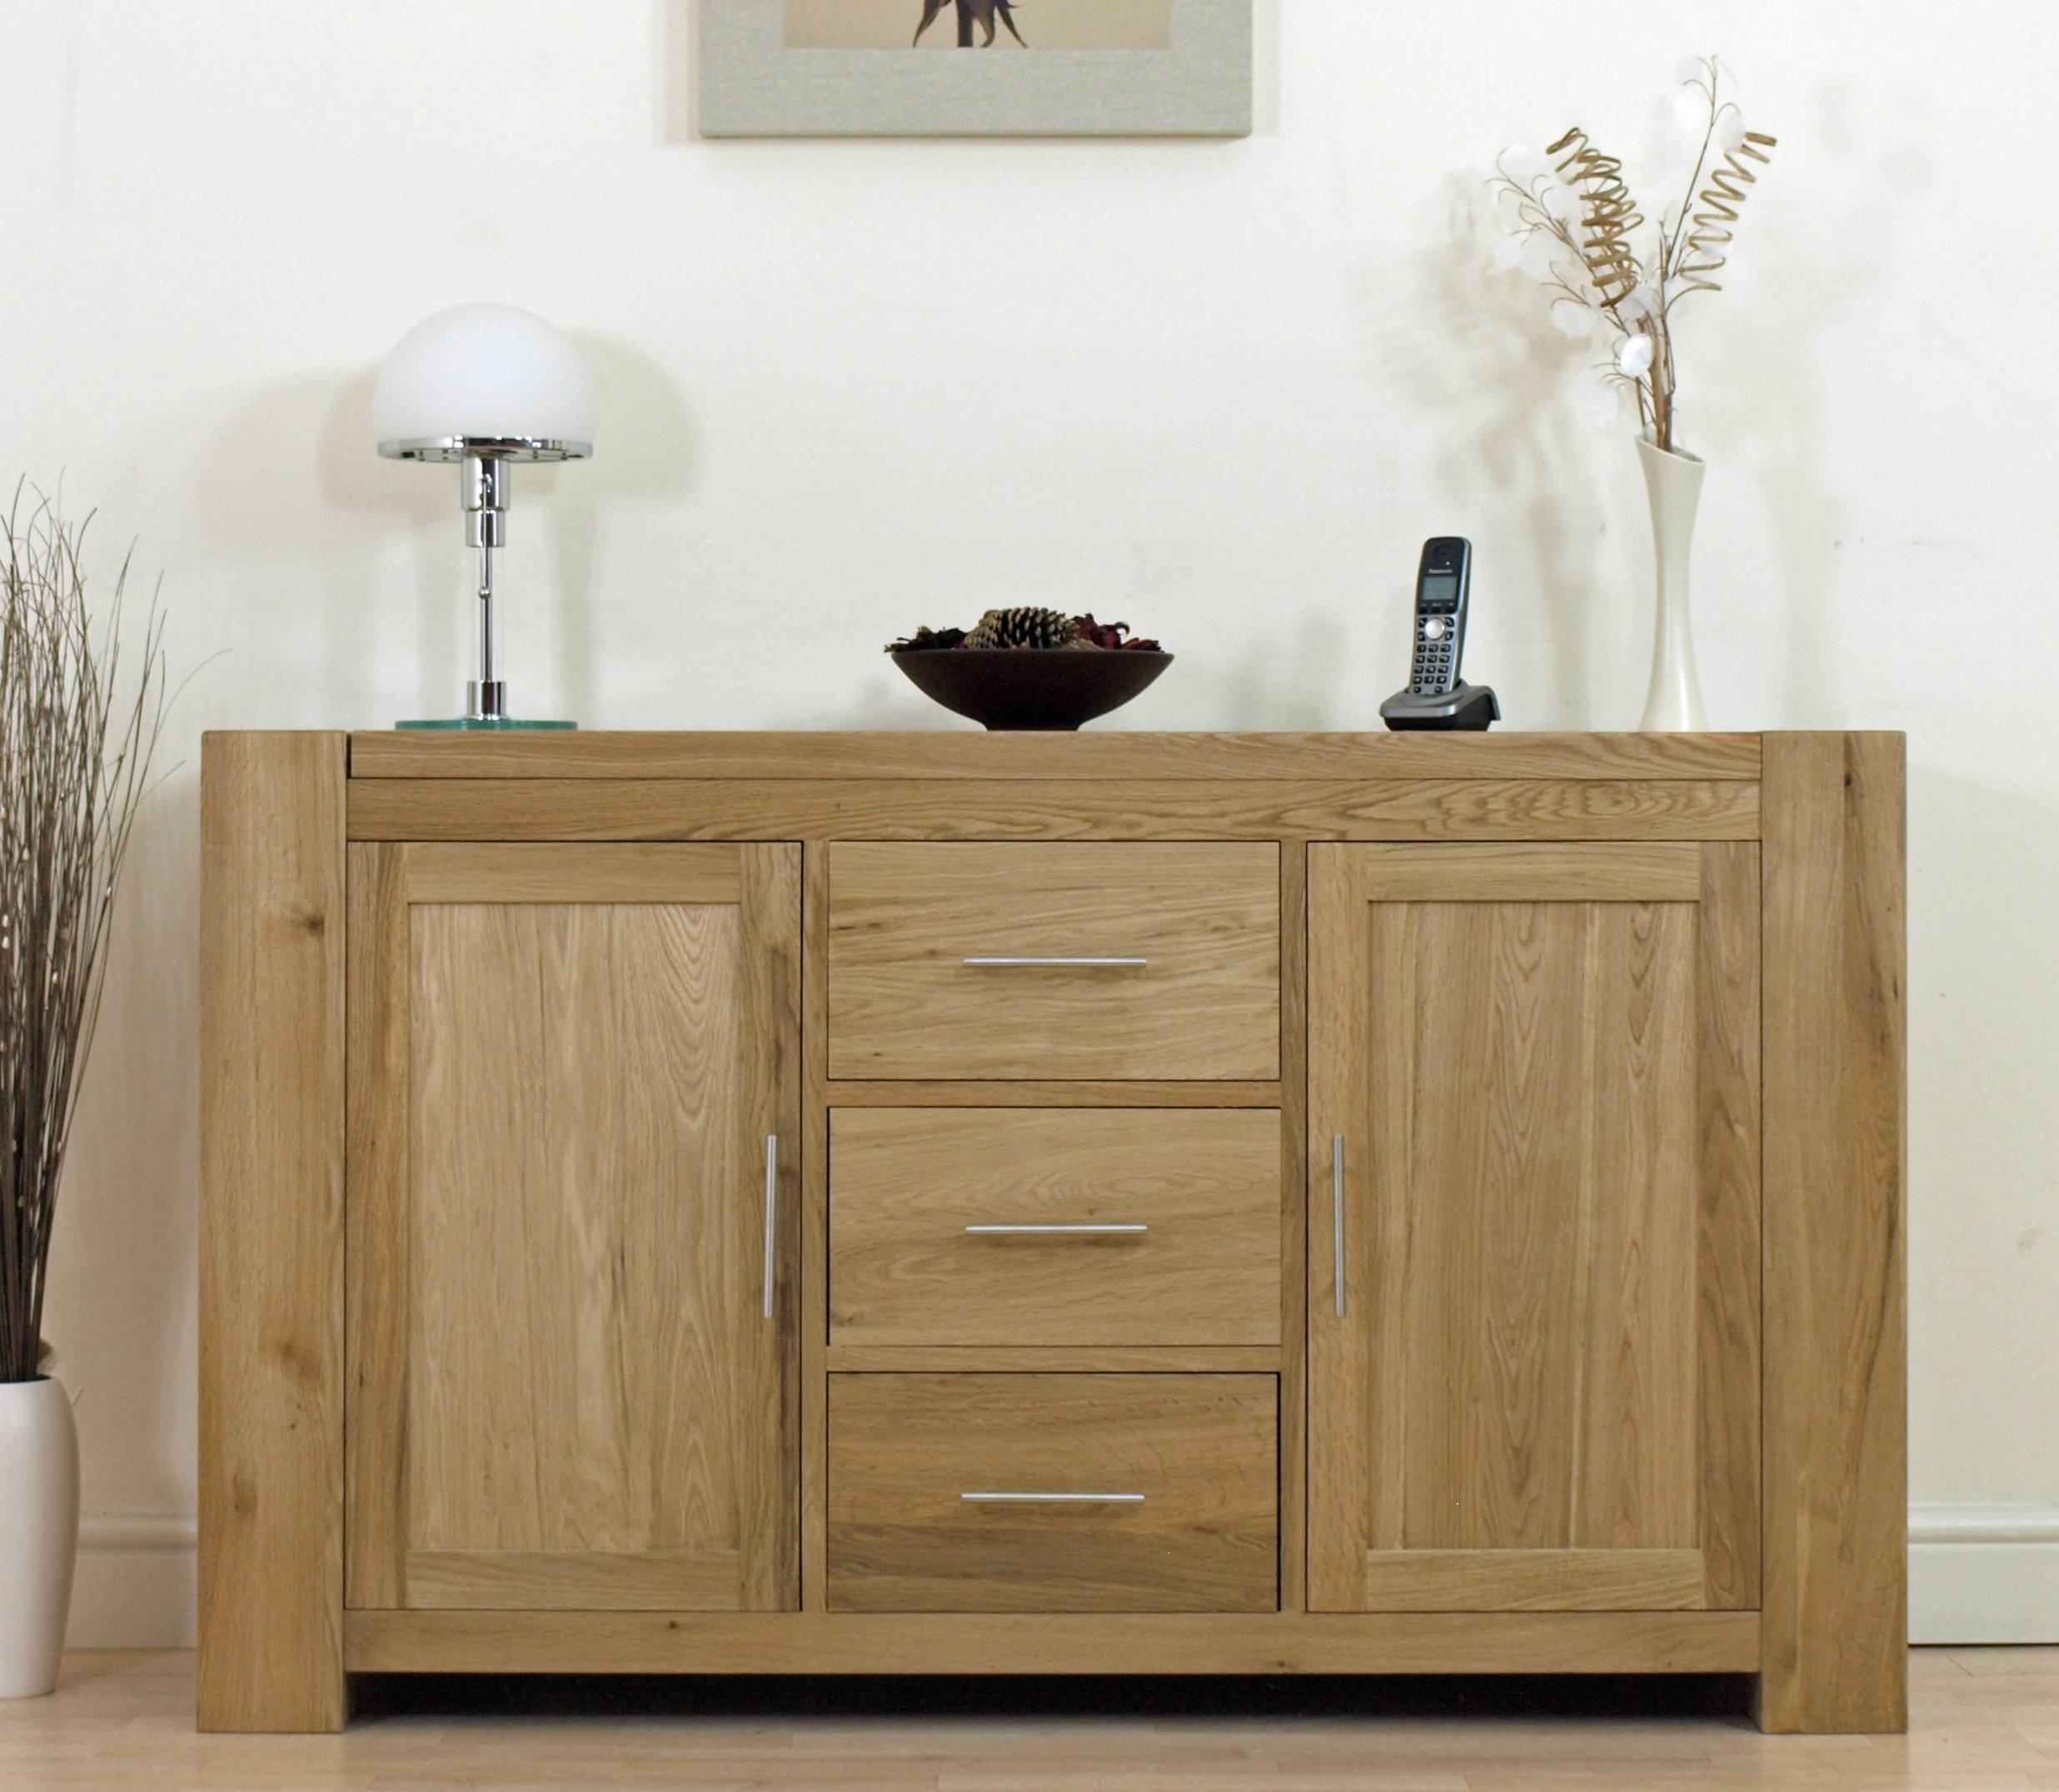 Solid Oak Sideboard Is Your First Choice Living Room Furniture - Hgnv inside Oak Sideboards (Image 24 of 30)